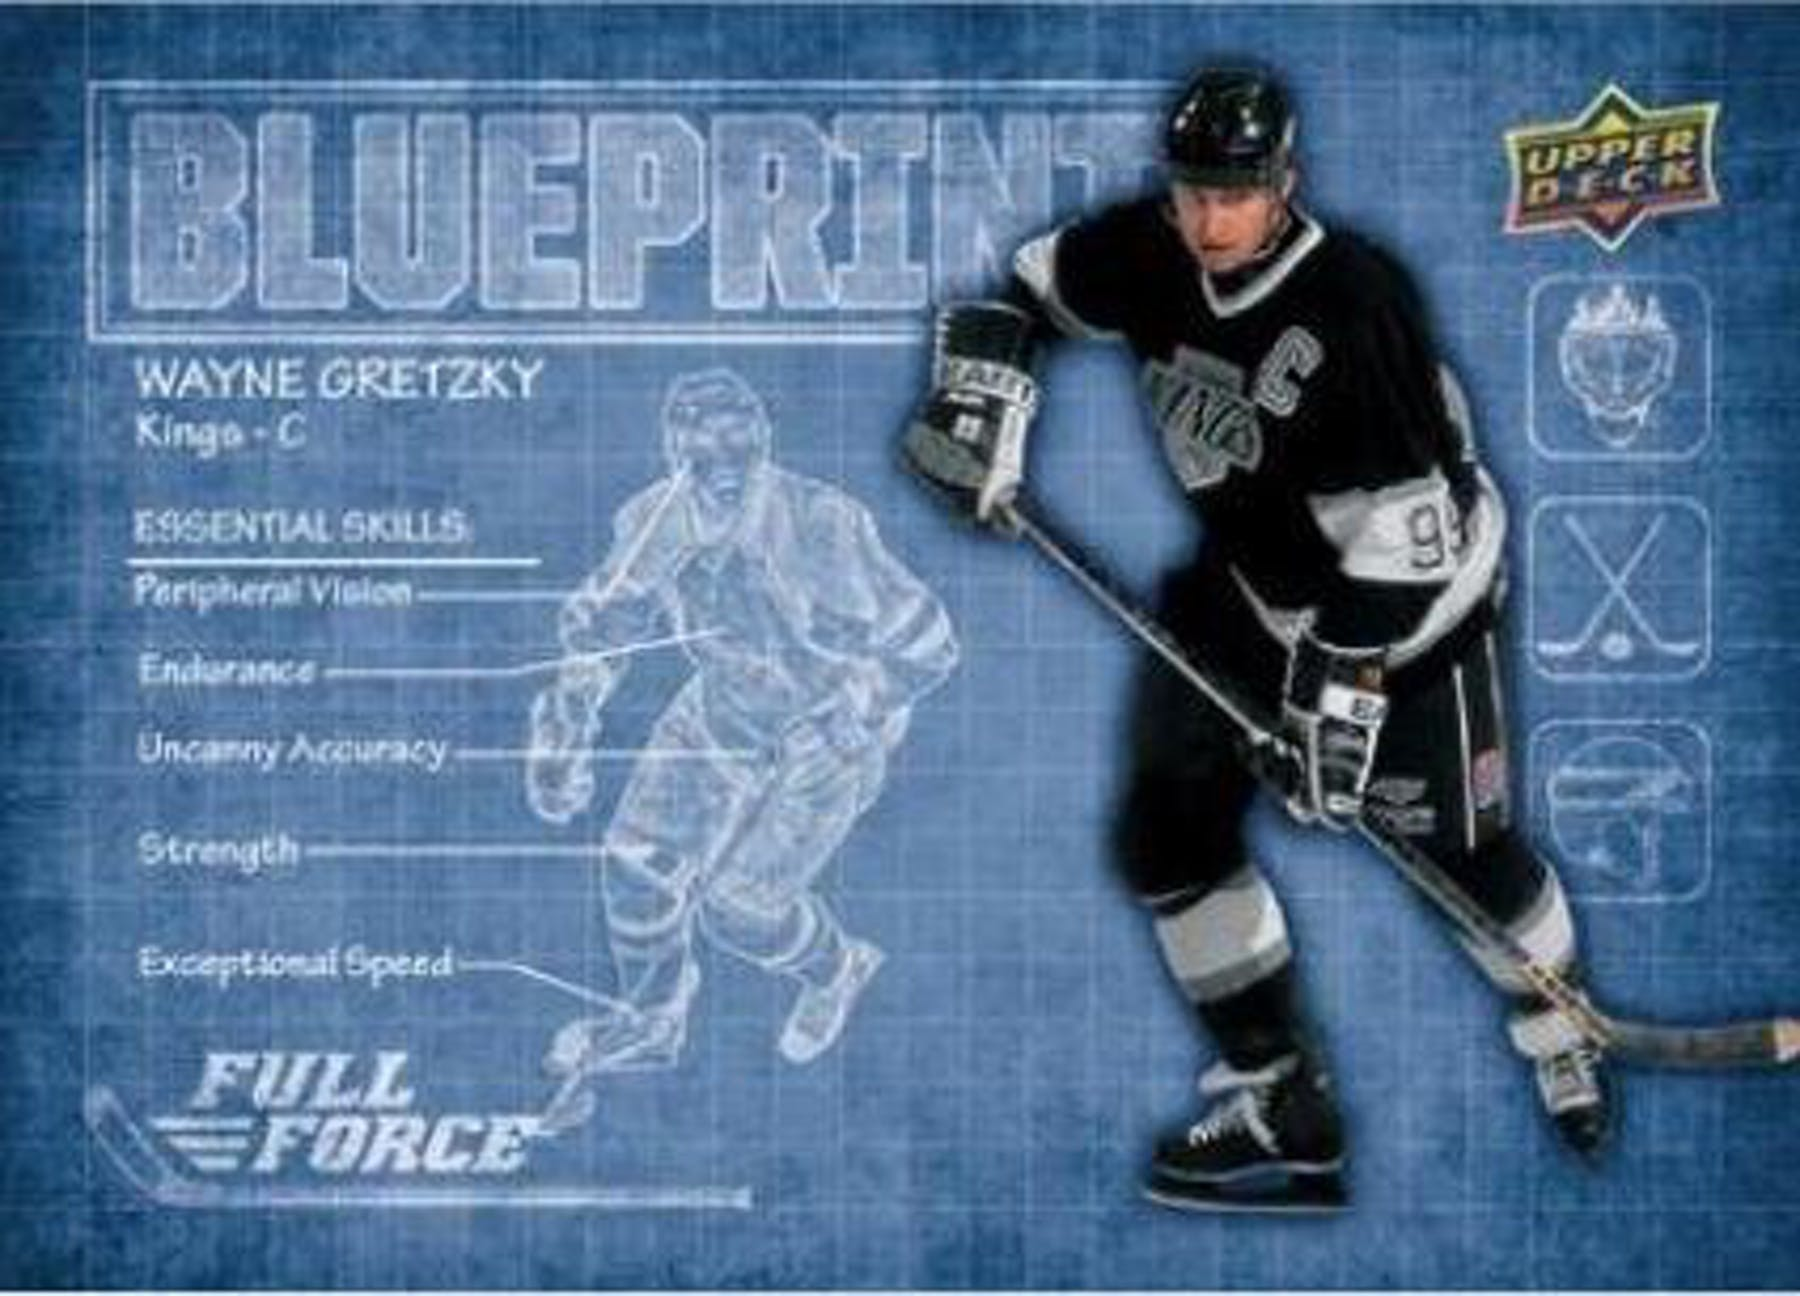 201516 upper deck full force hockey hobby box da card world 201516 upper deck full force hockey hobby box malvernweather Image collections